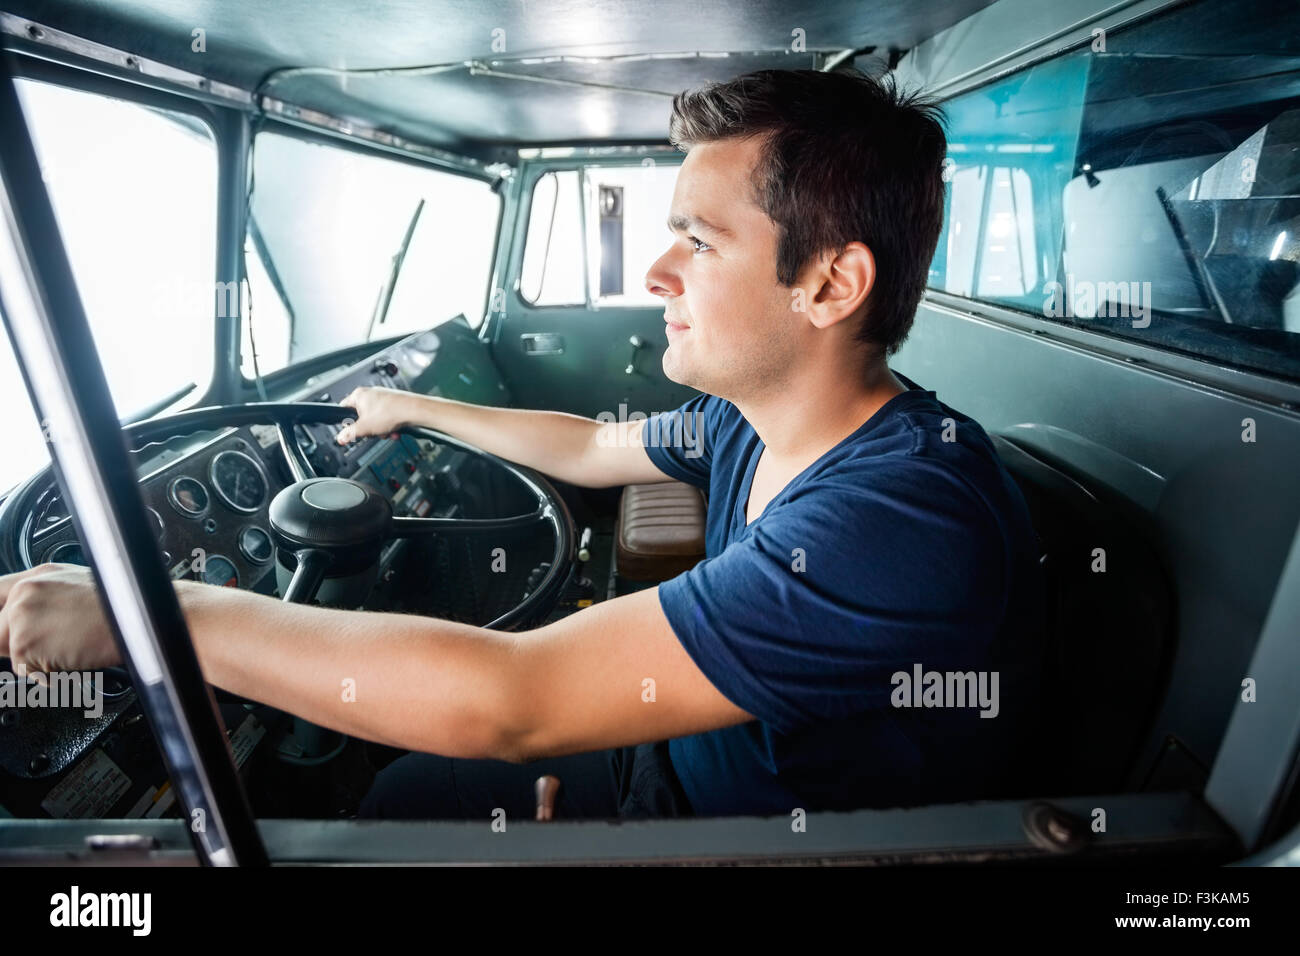 Security Van Driver Stock Photos & Security Van Driver Stock